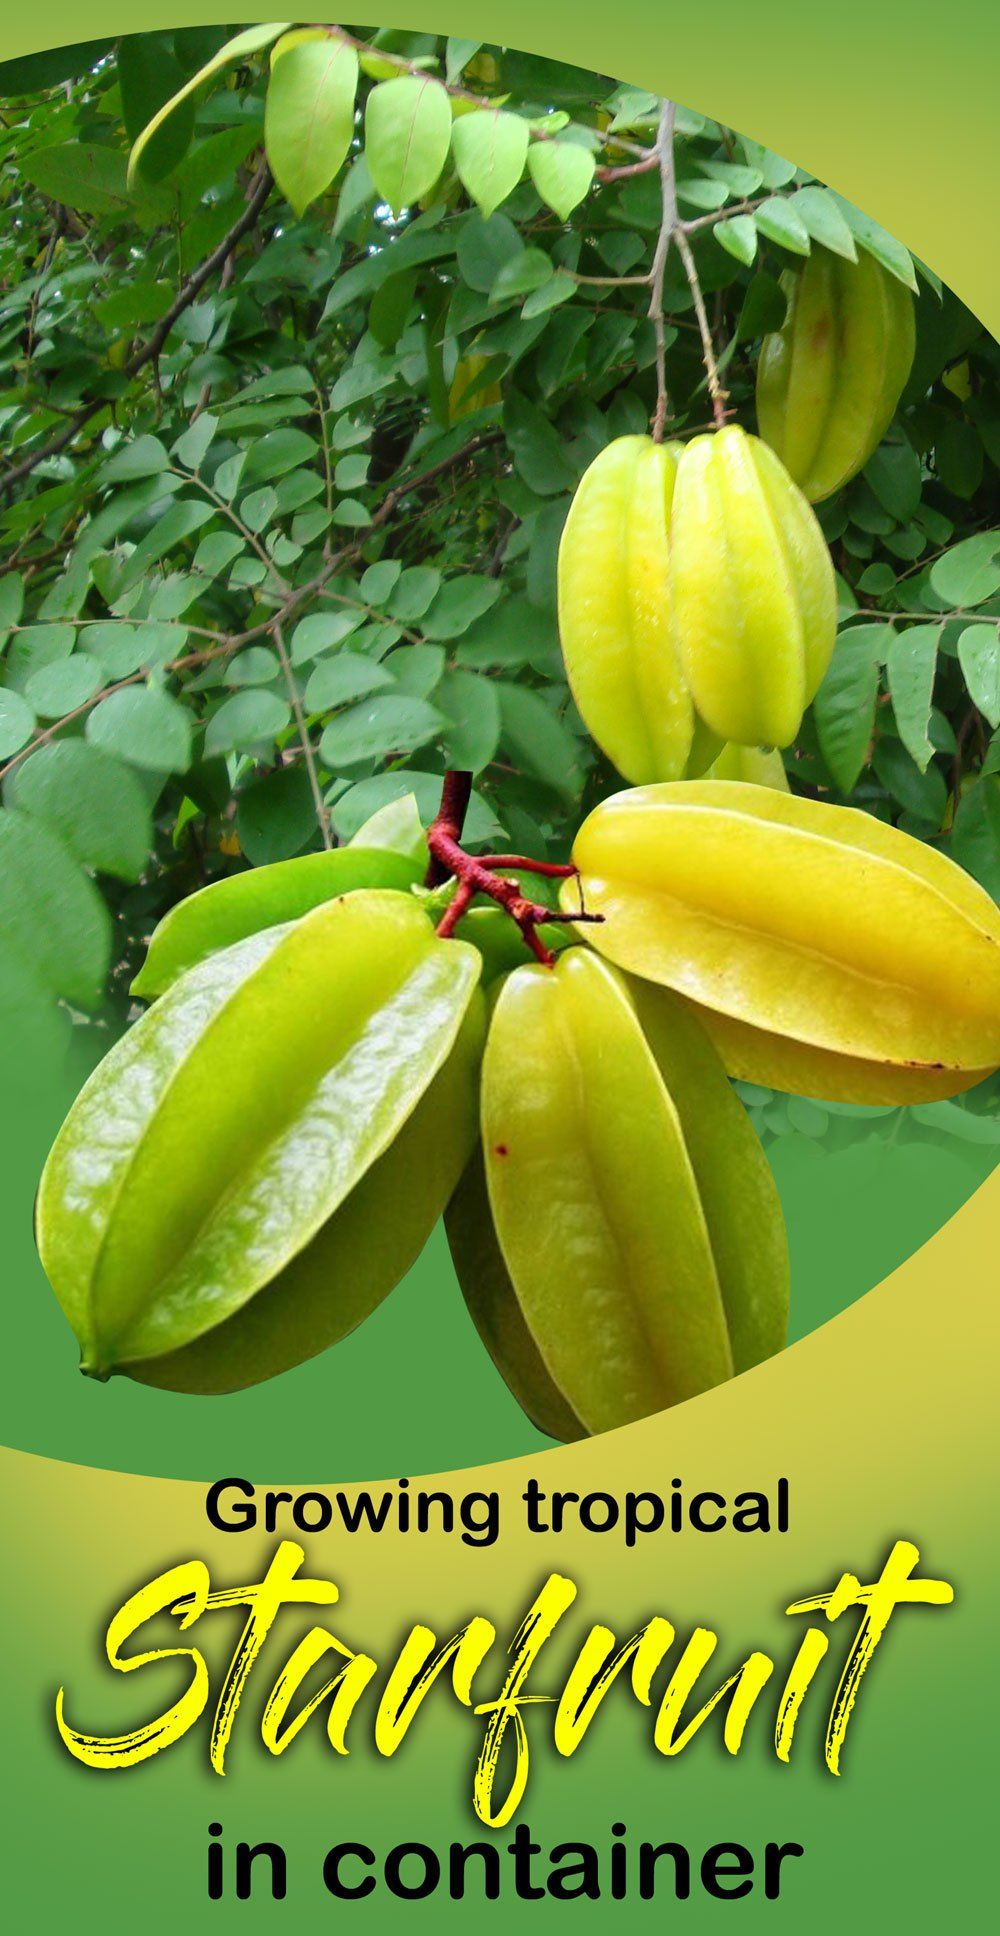 Growing Star Fruit How To Grow Star Fruit Tree From Seed Carambola Fruit Container Gardening Vegetables Container Gardening Flowers Growing Fruit Trees